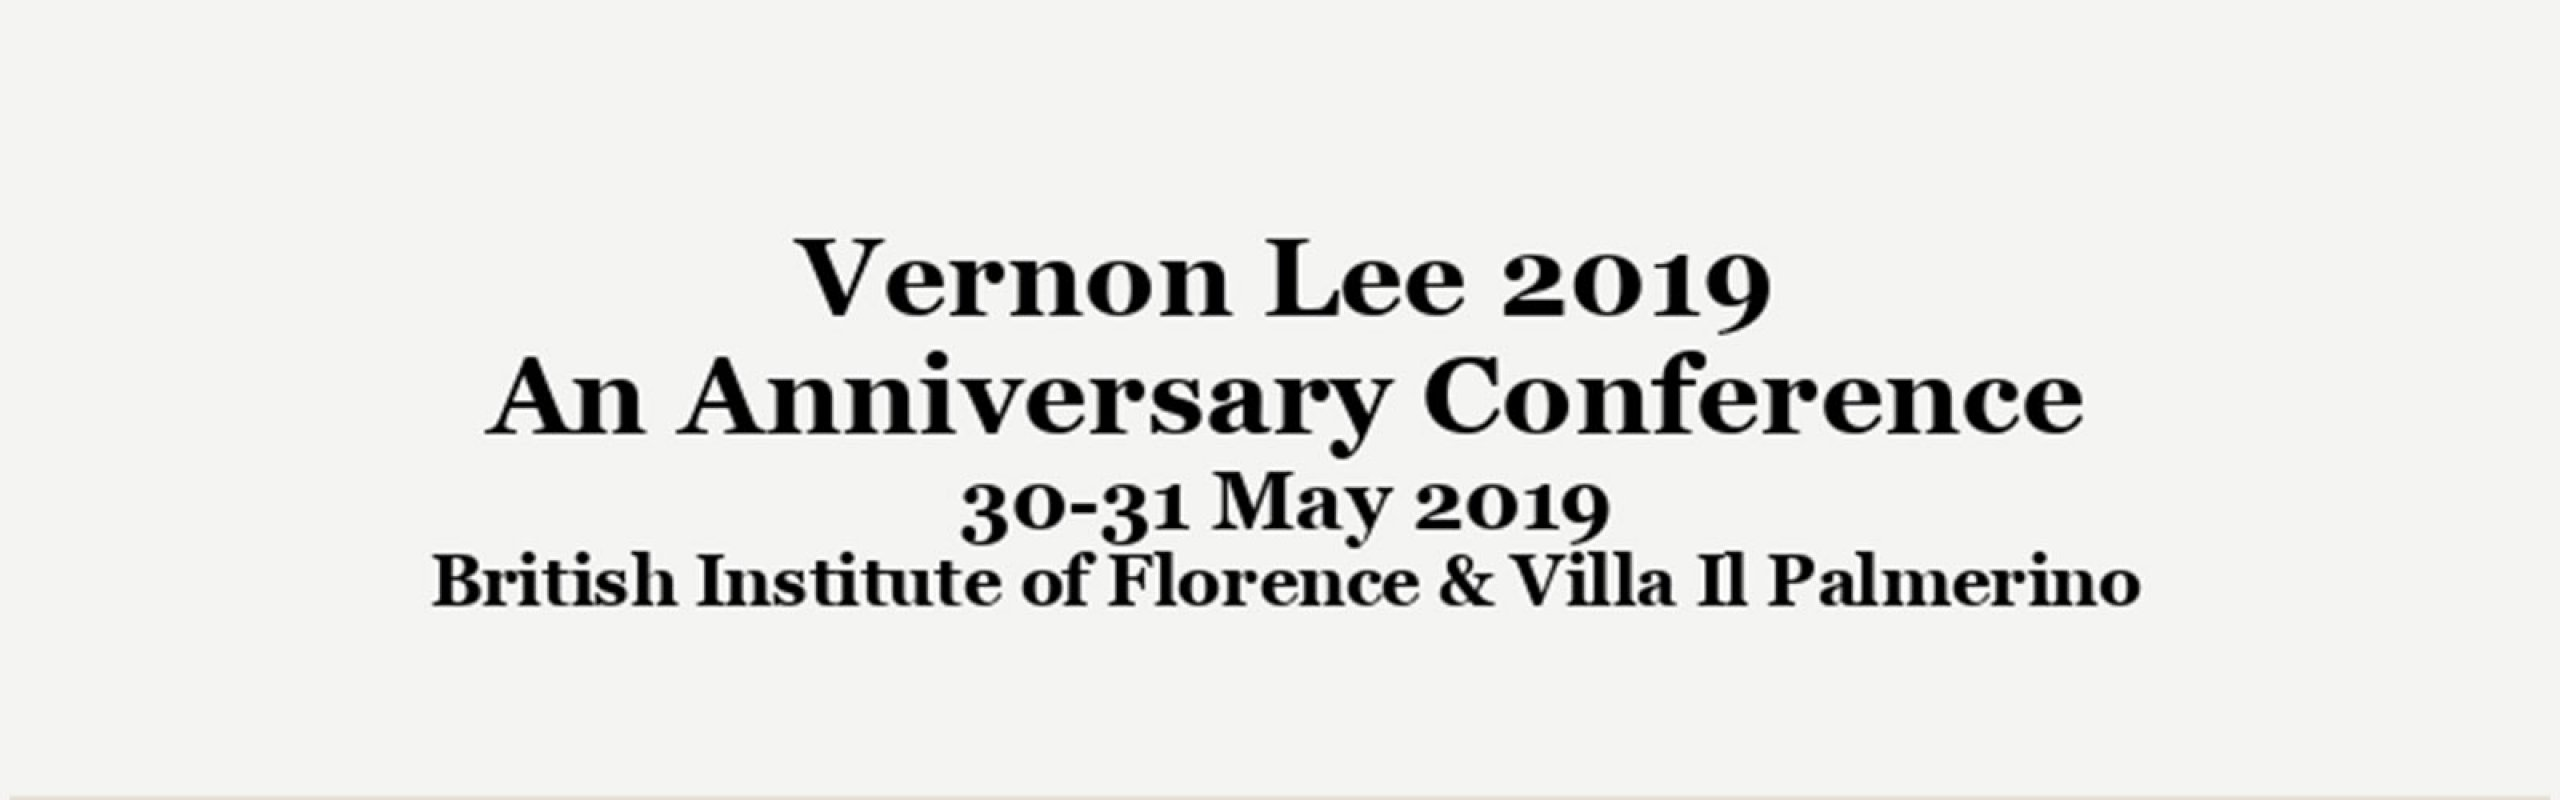 Vernon Lee 2019: An Anniversary Conference